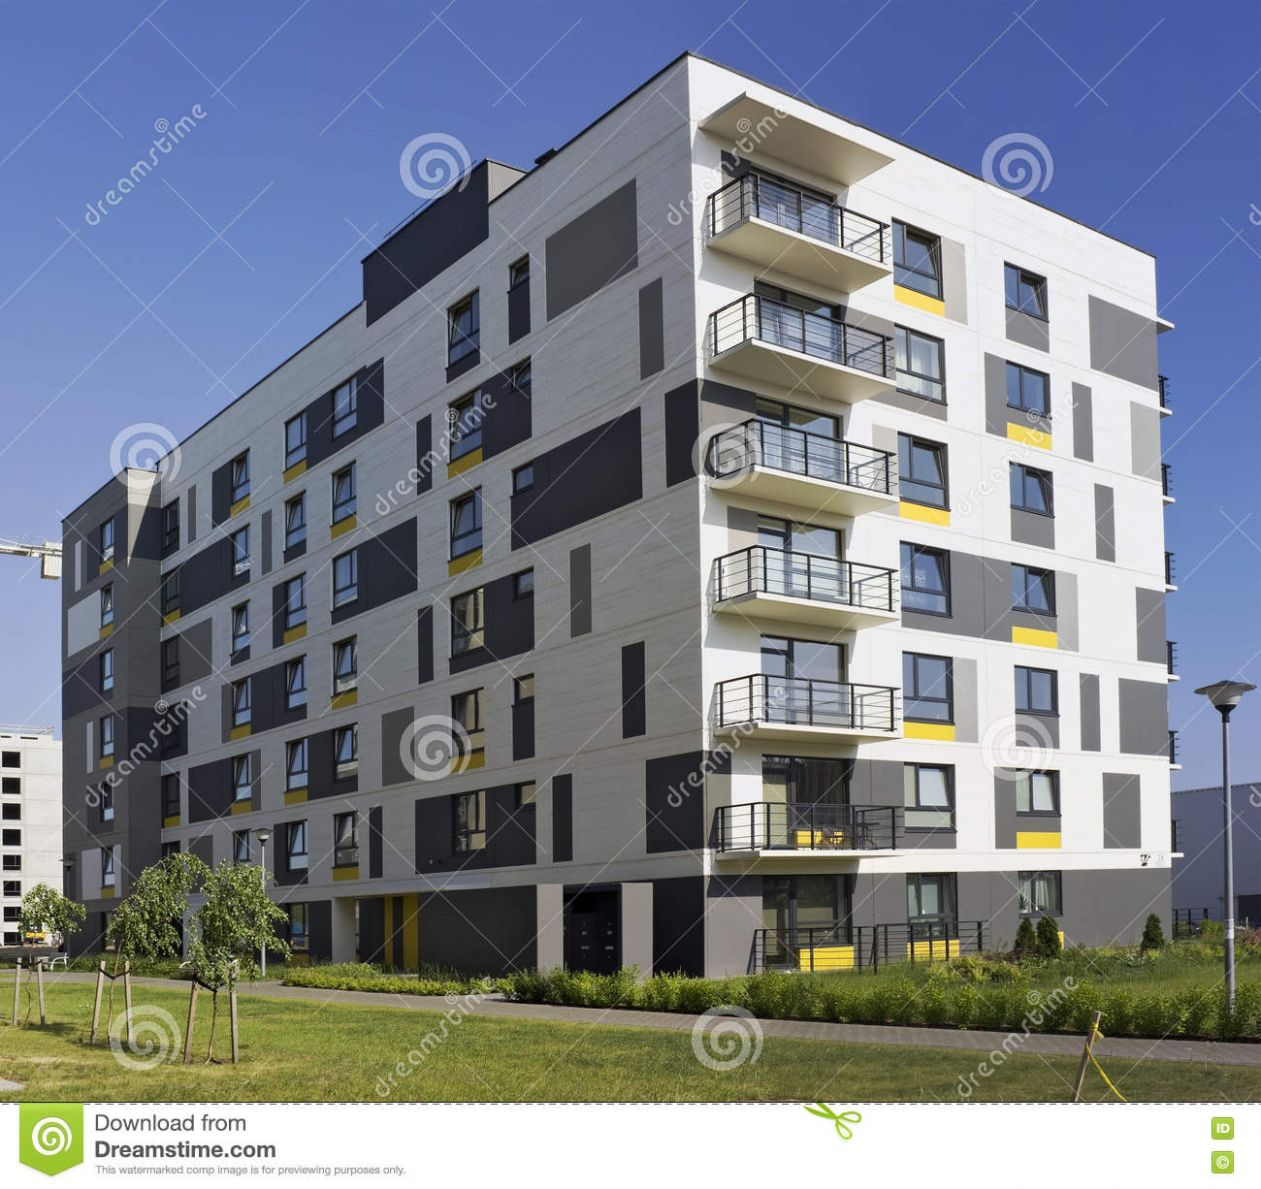 Modern Modular House With Low Cost Small-sized Apartments Stock ...